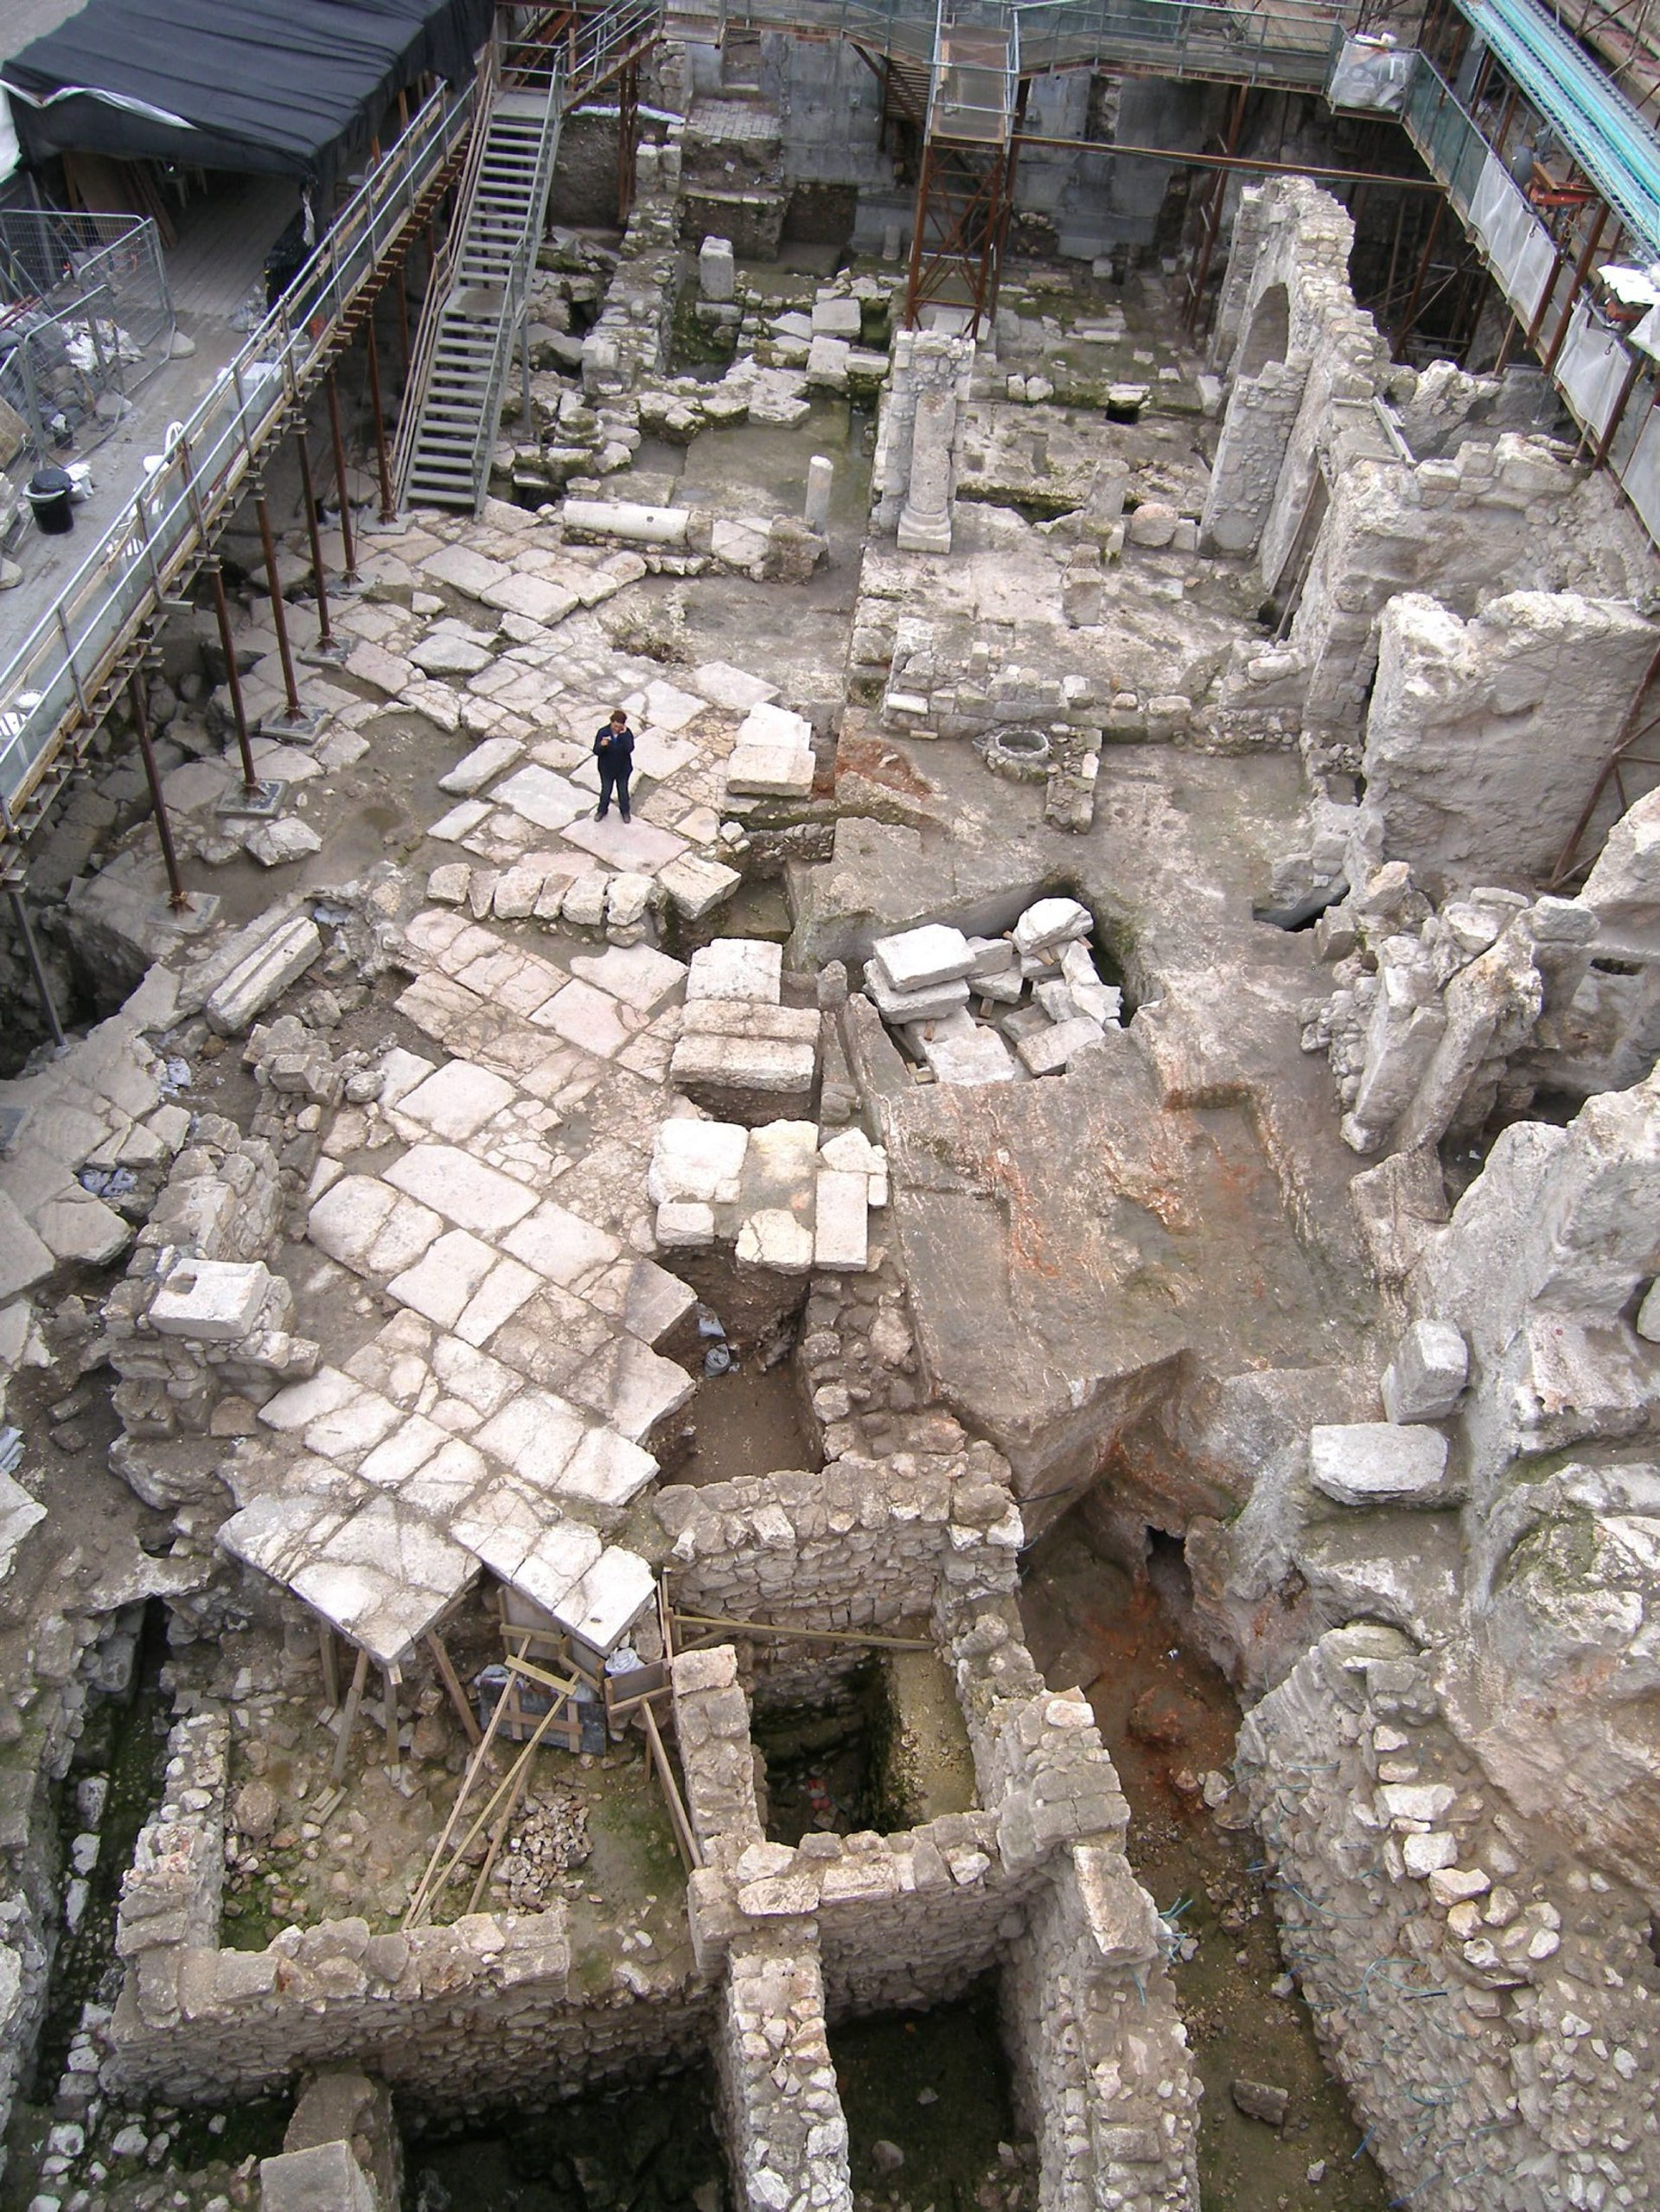 The excavation in the Western Wall plaza uncovered First Temple era buildings